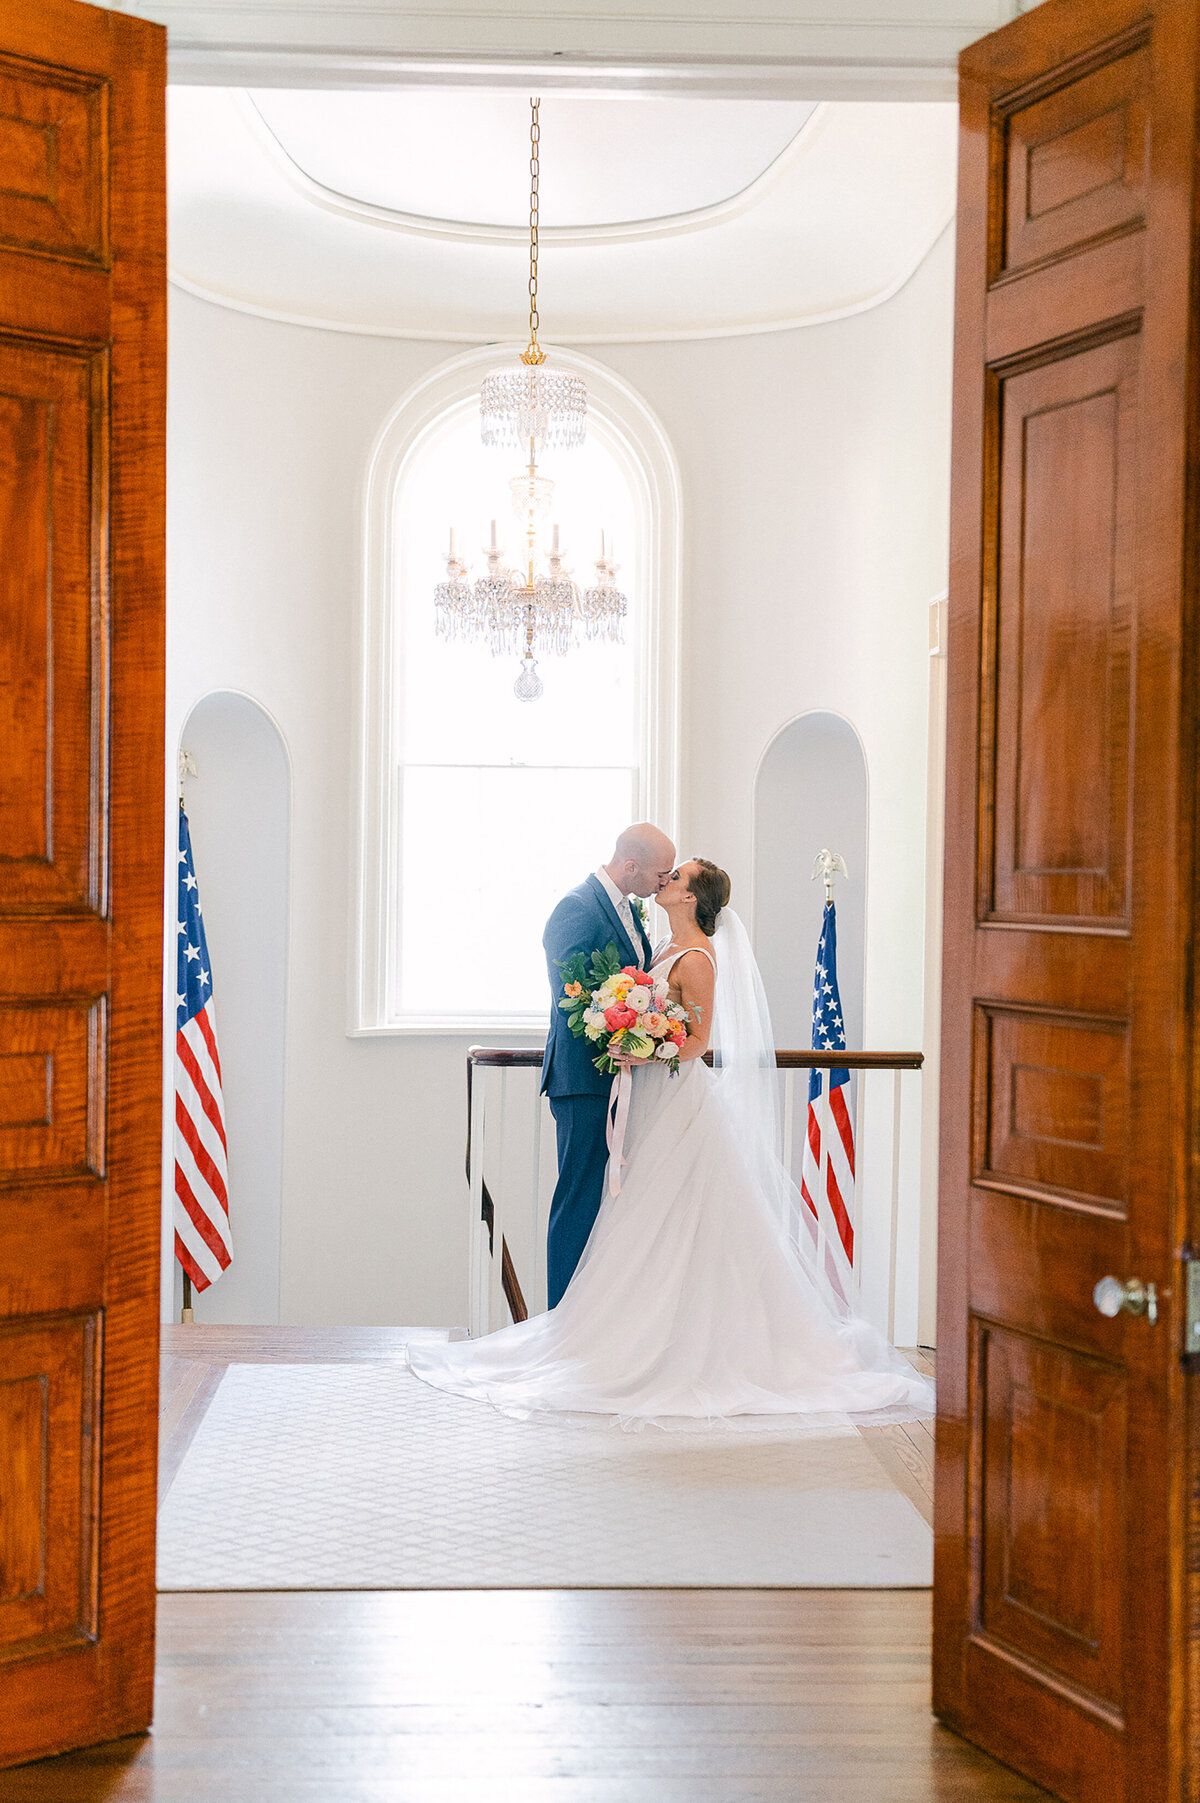 Jennifer Bosak Photography - DC Area Wedding Photography - DC, Virginia, Maryland - Jeanna + Michael - Decatur House Wedding - 64